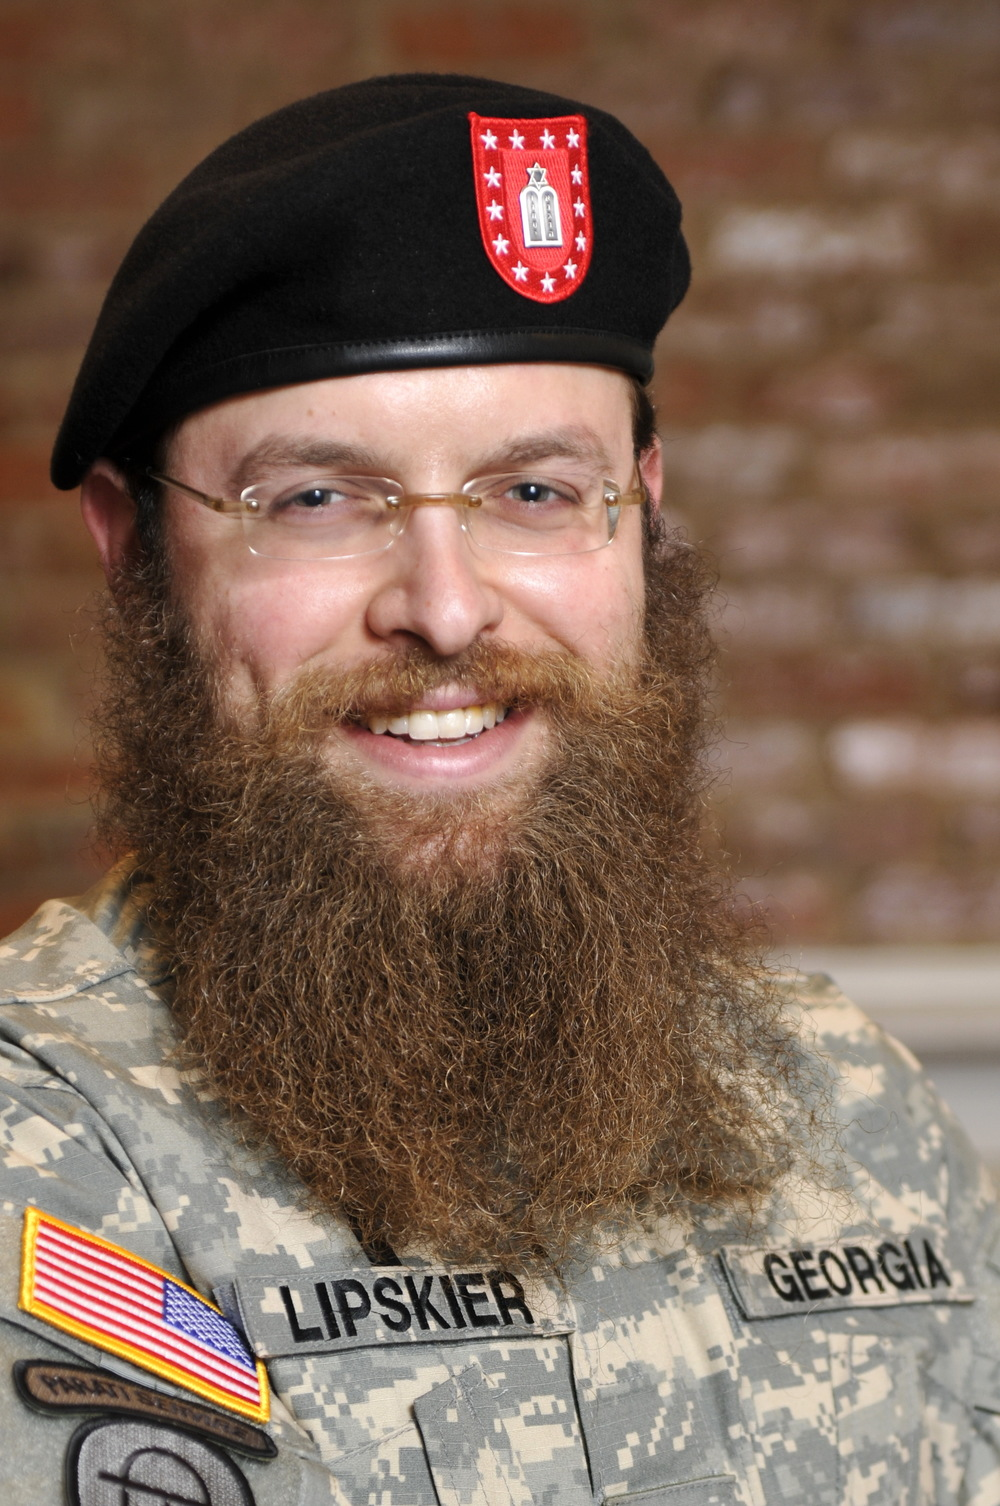 Click photo to download. Caption: In March 2008, the Georgia State Defense Force approved its first waiver for a beard when Rabbi Zalman Lipskier, pictured here, was commissioned as a chaplain. Credit: Duane Stork via Wikimedia Commons.